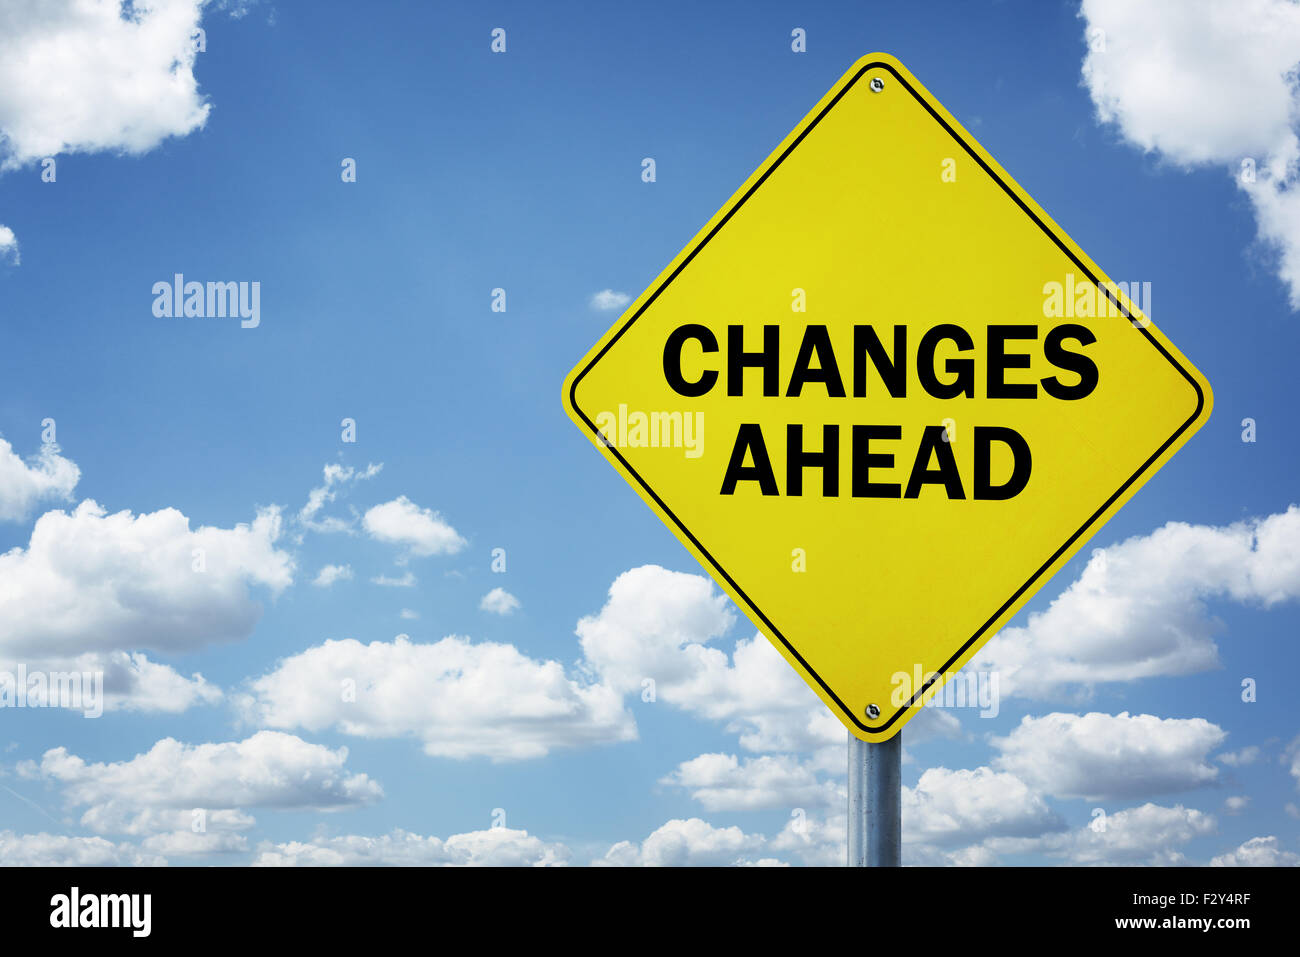 Changes ahead road sign - Stock Image